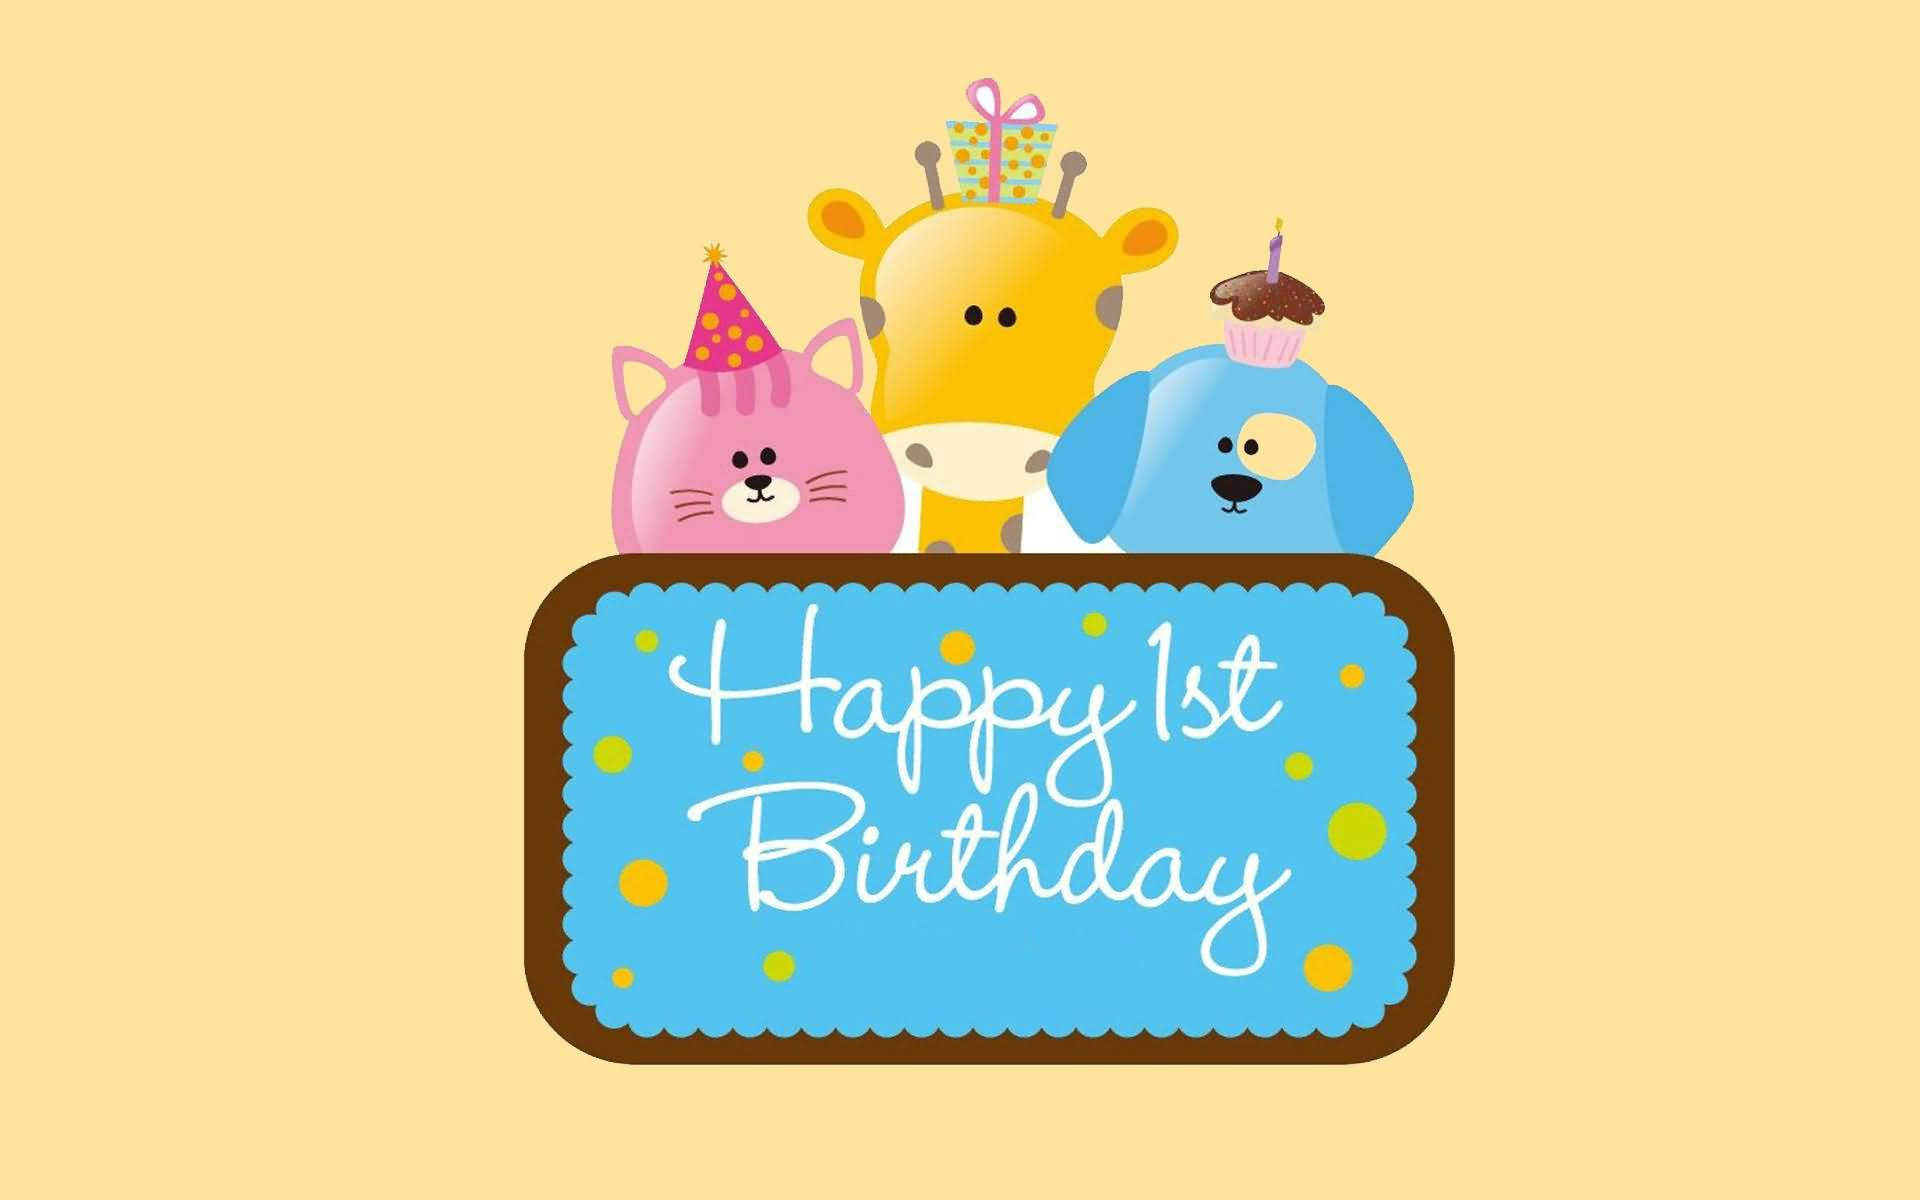 Happy 1st Birthday Wishes Messages Sayings Cards Lines Happy Birthday 1st Year Wishes